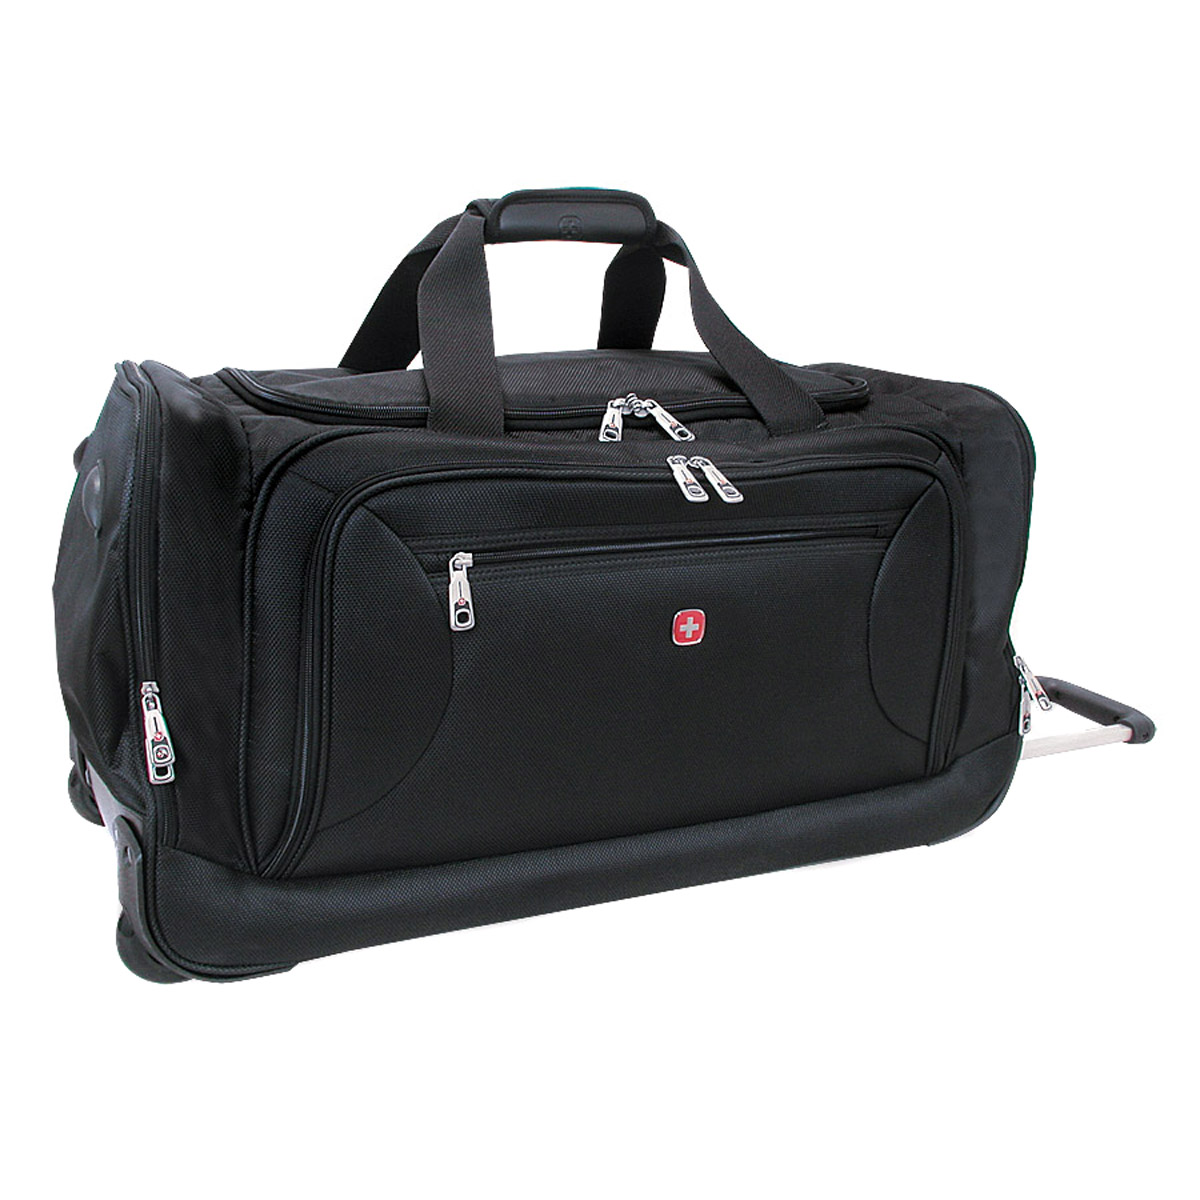 Wenger Swissgear 22 Quot Rolling Carry On Duffel Bag Black